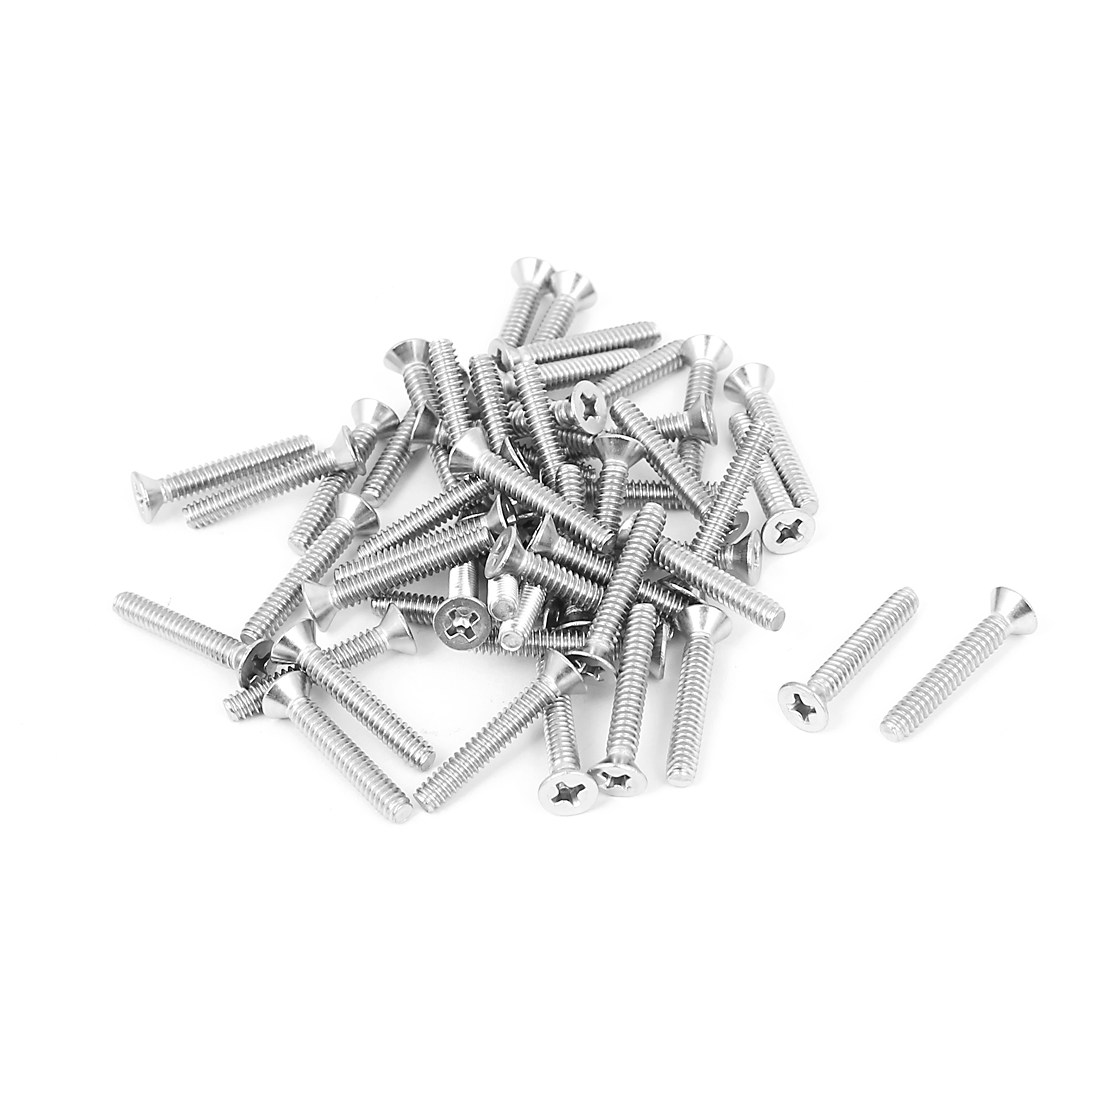 "6#-32x7/8"" 304 Stainless Steel Phillips Flat Countersunk Head Screws 50pcs"